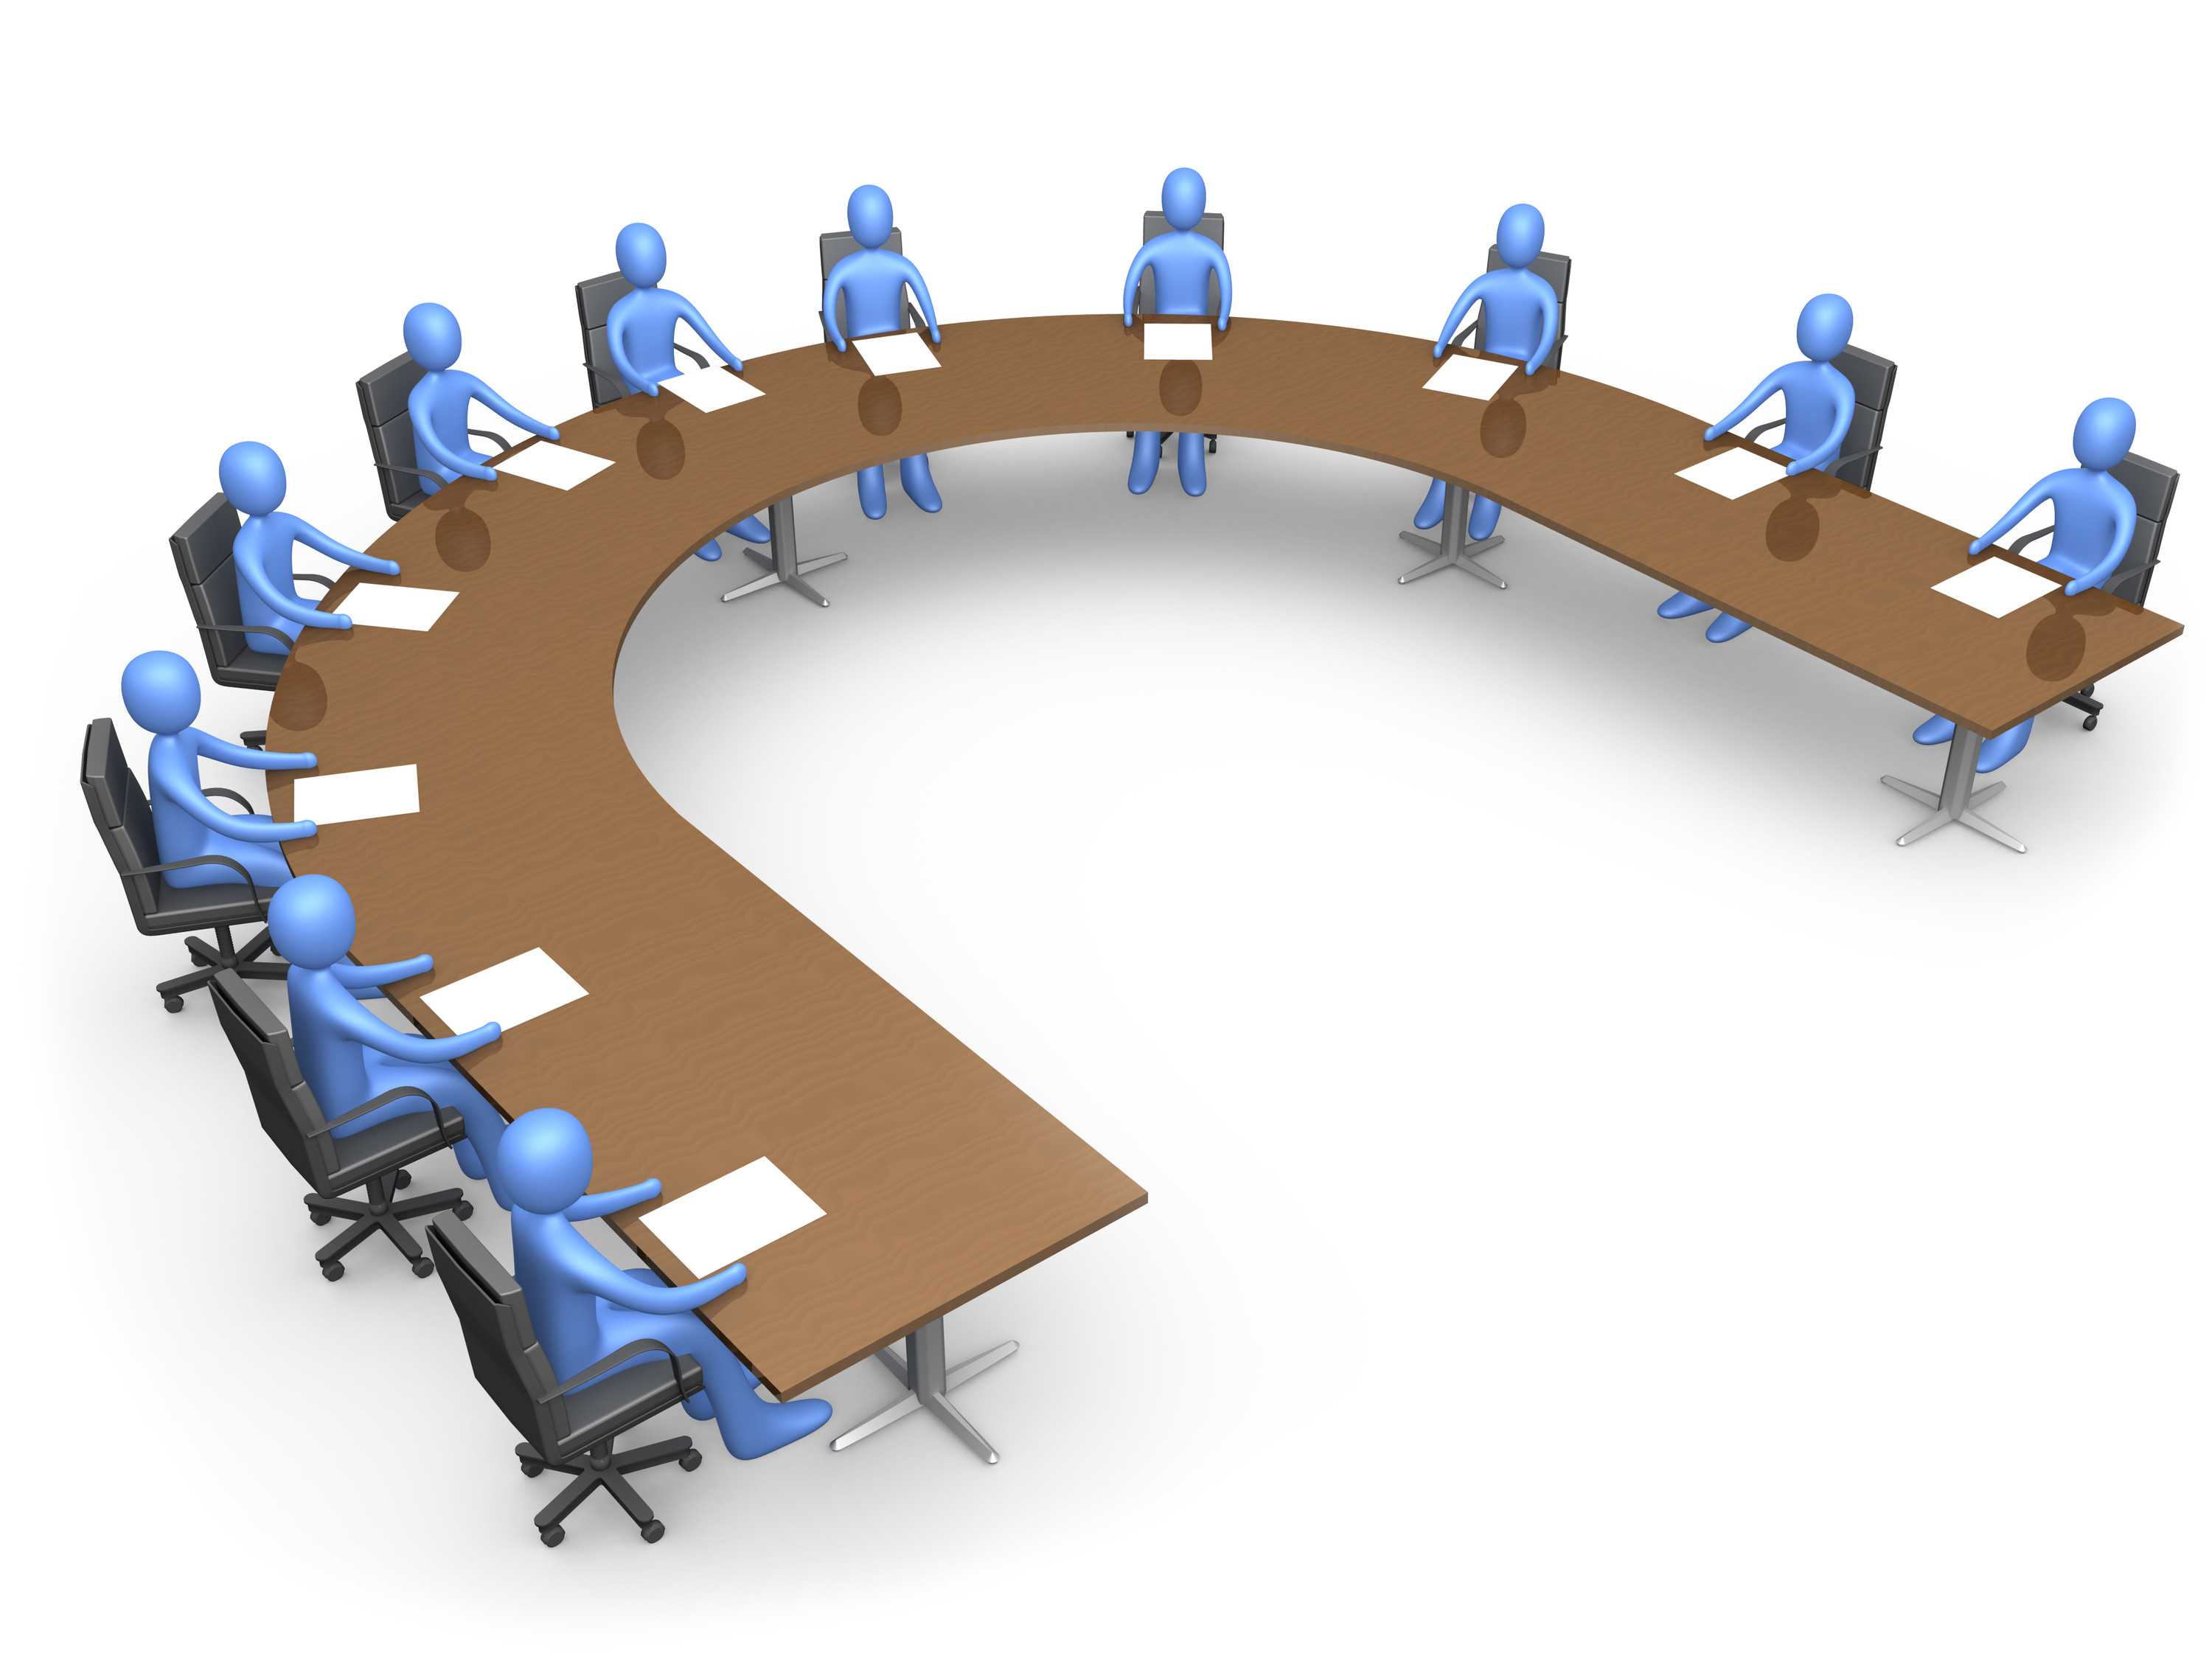 Next Council to have more comprehensive training with passing of Council Orientation Plan